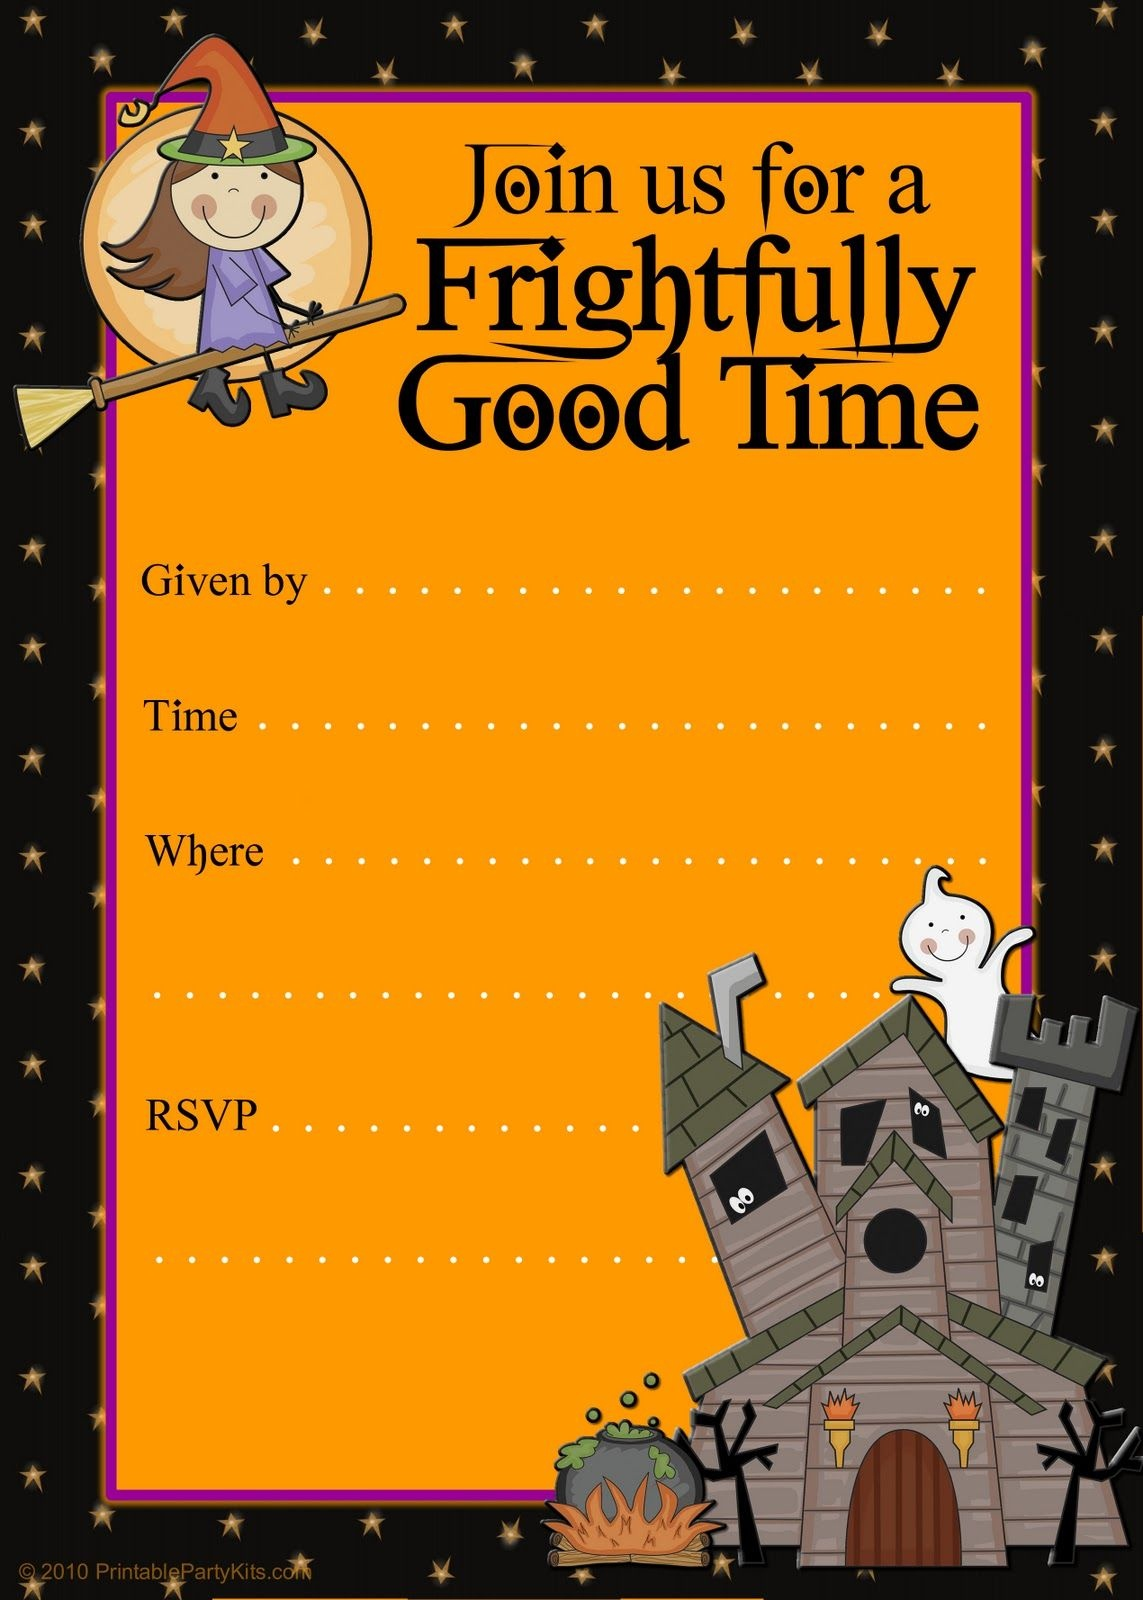 Free Halloween Flyer Invitations Printable | Food | Halloween - Free Printable Halloween Flyer Templates